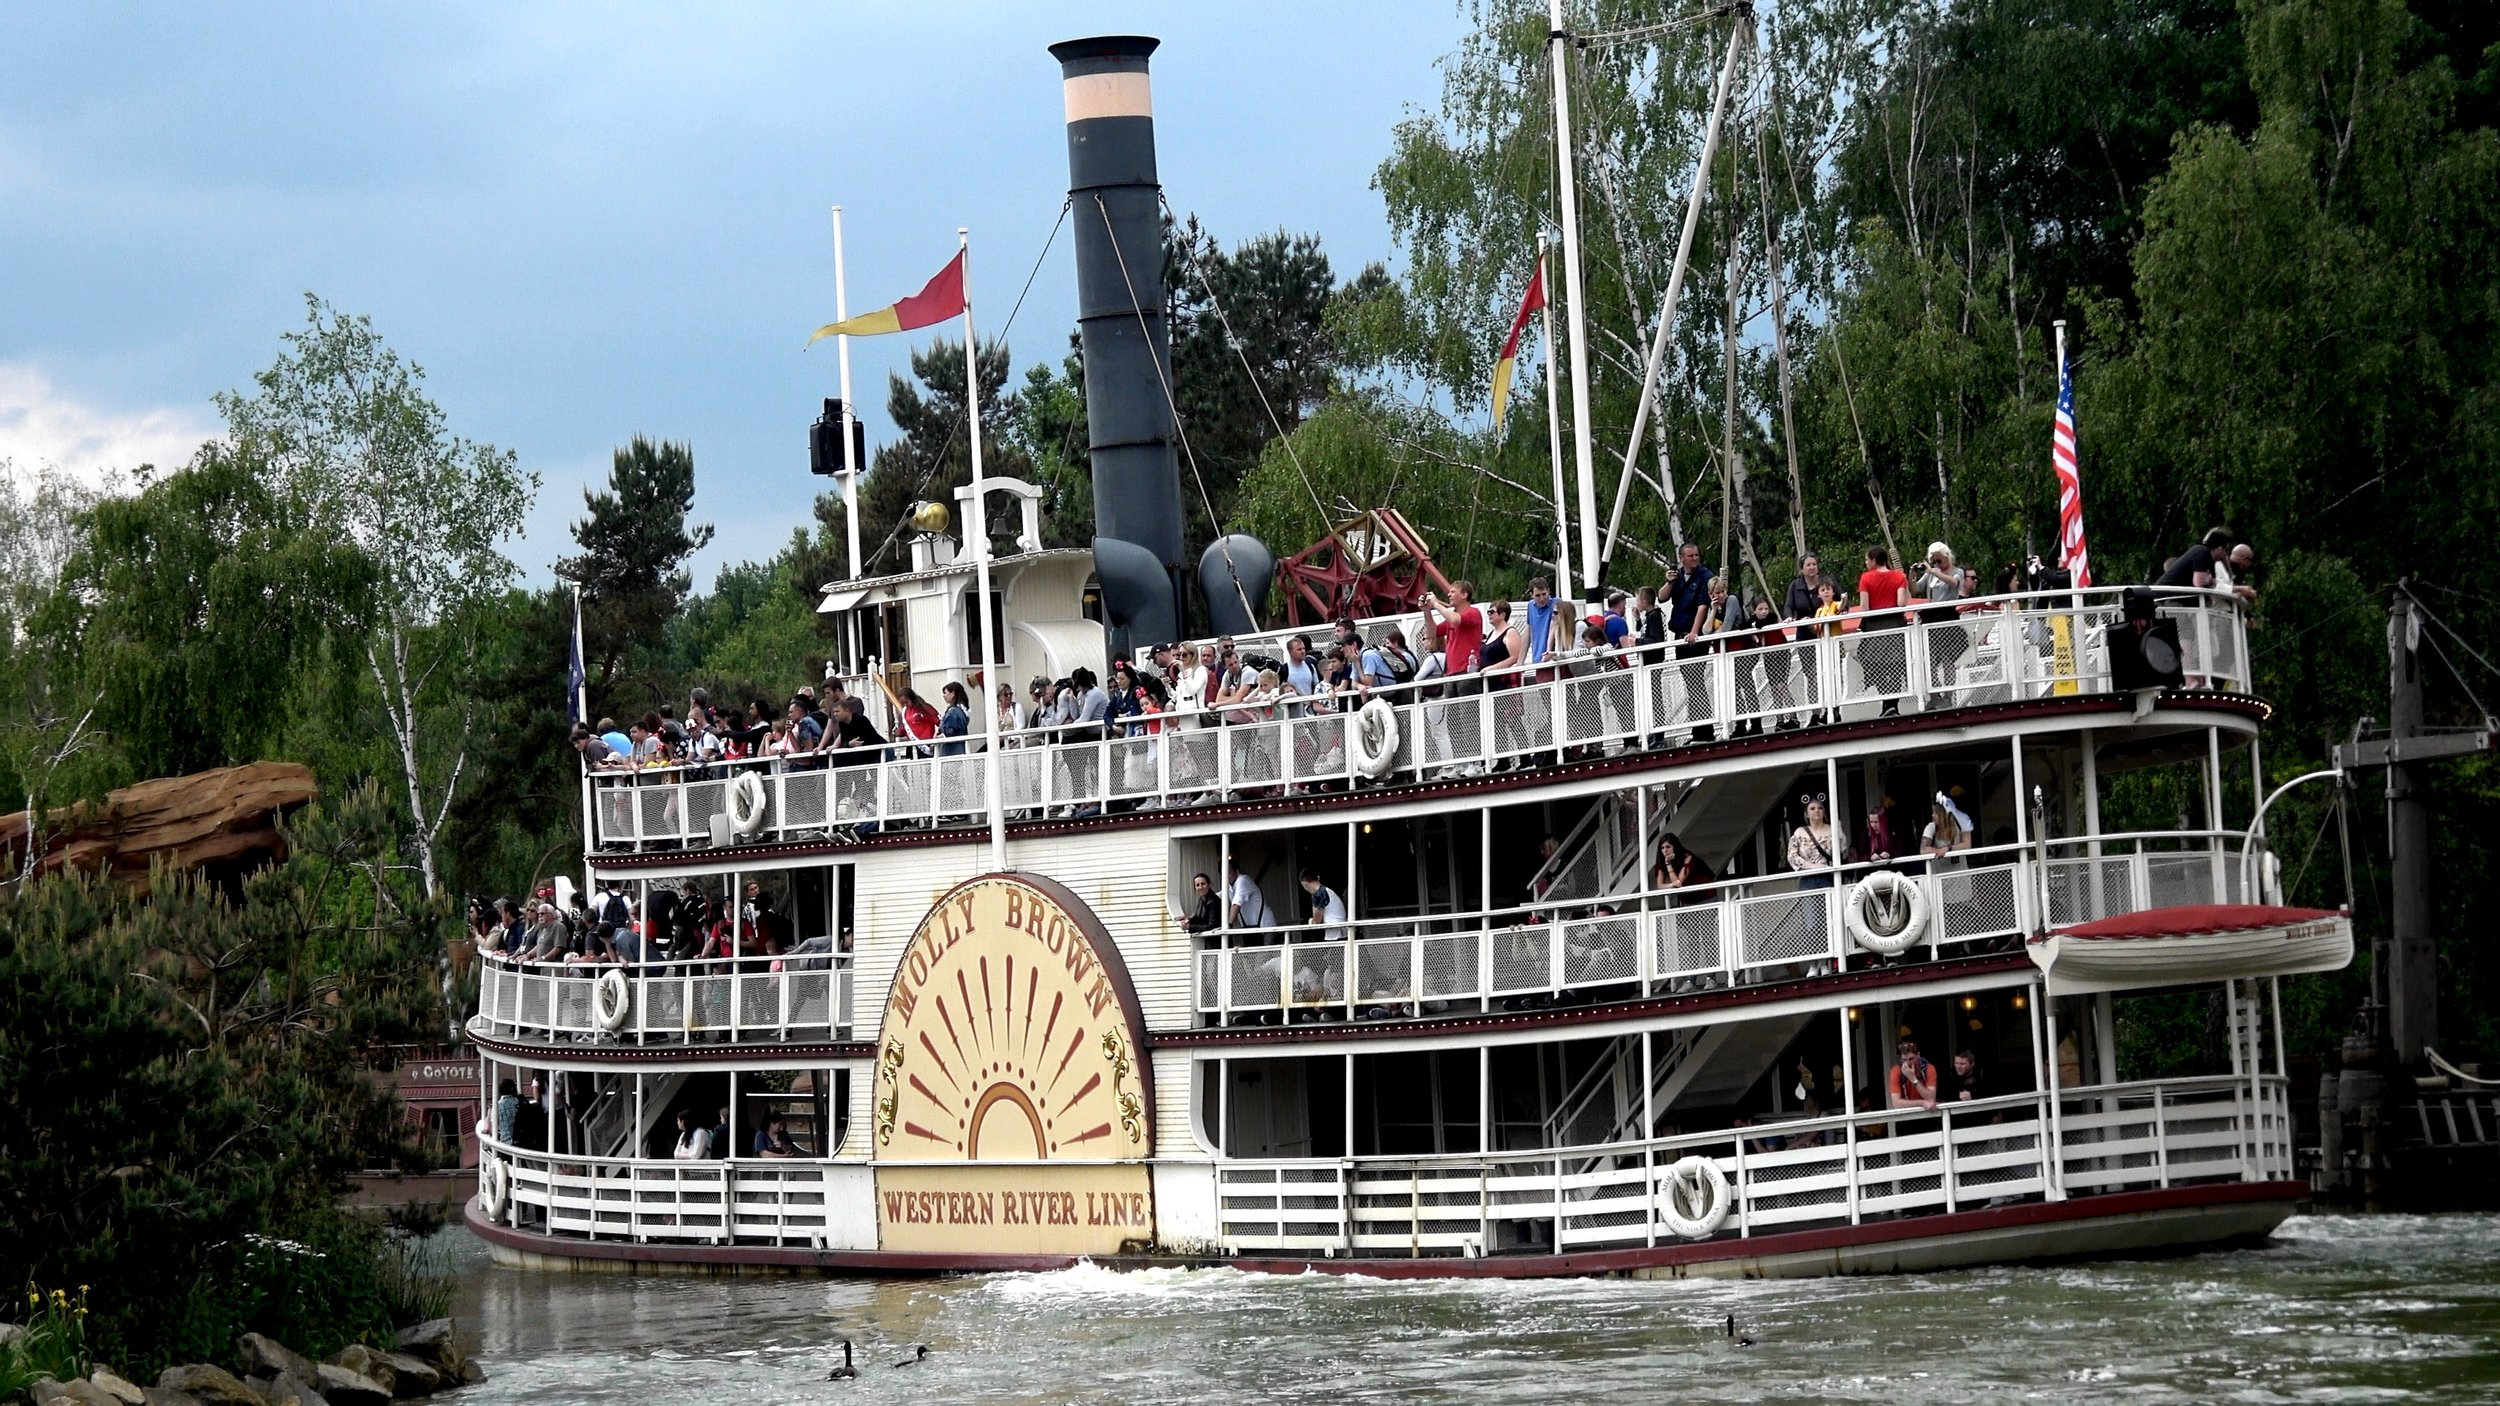 A relaxing Boat ride on the Rivers of the Far West at Disneyland Paris.jpg